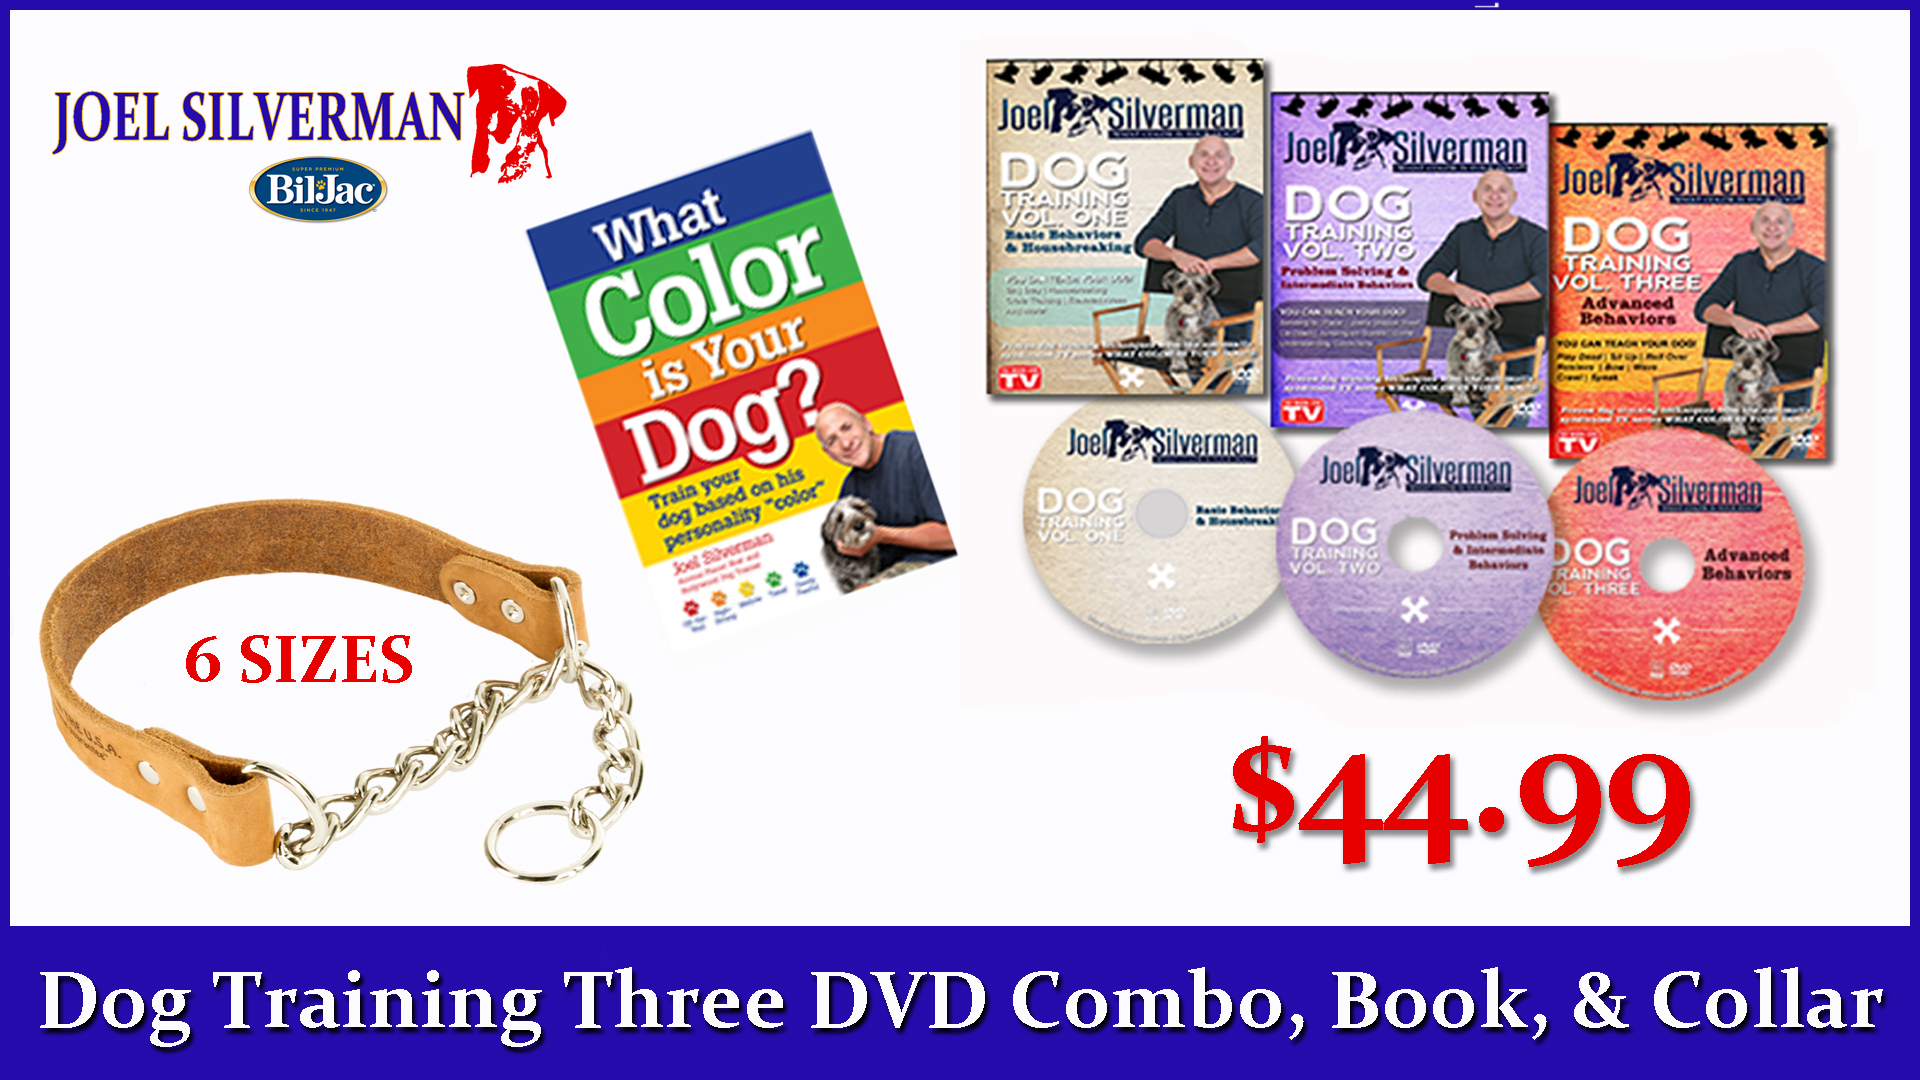 Joel Silverman's 3 DVD Set/ Alternative Training Collar/ What Color Is Your Dog? Book